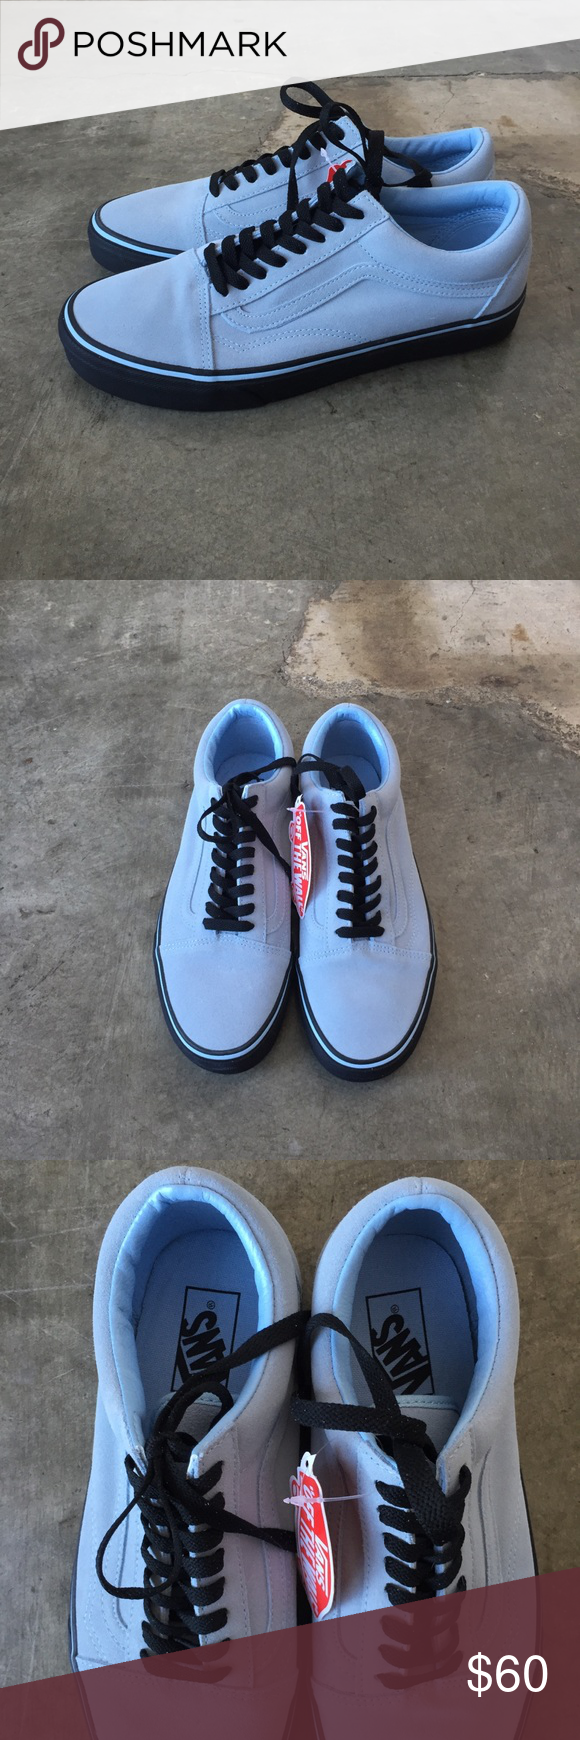 bed5eb2d584111 Vans x UO  Old Skool  light sky blue w  black sole Brand new with tags!  Rare